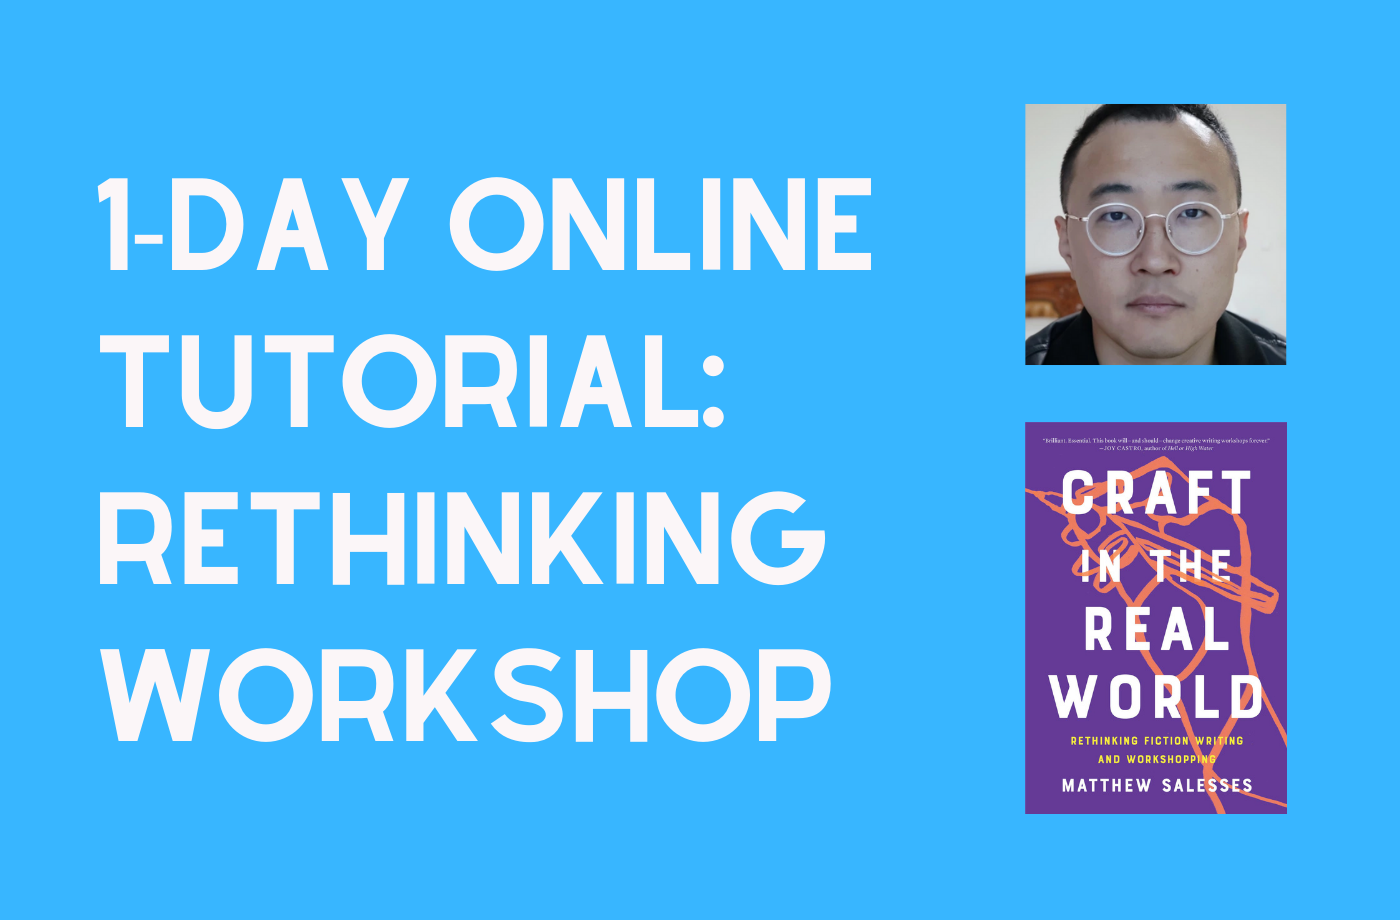 Catapult online classes: Matthew Salesses, 1-Day Online Tutorial: Rethinking Workshop, Open-Genre, Tutorial